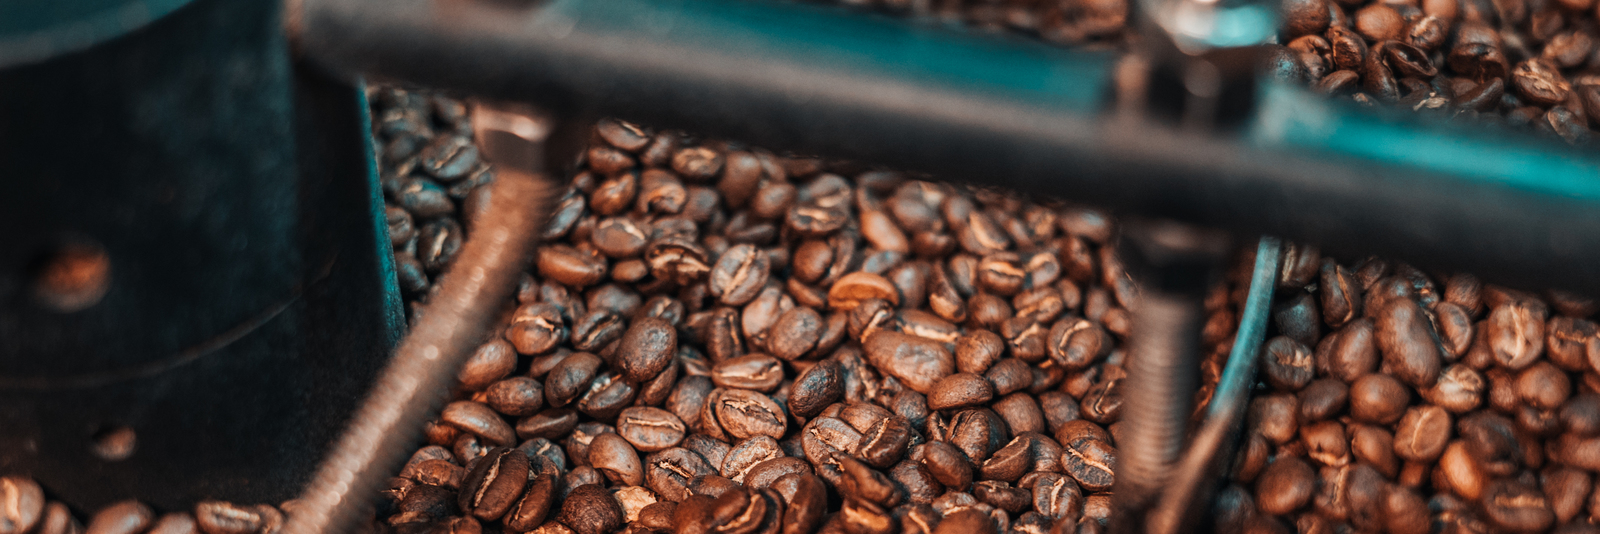 Roasted coffee beans in the cool tray